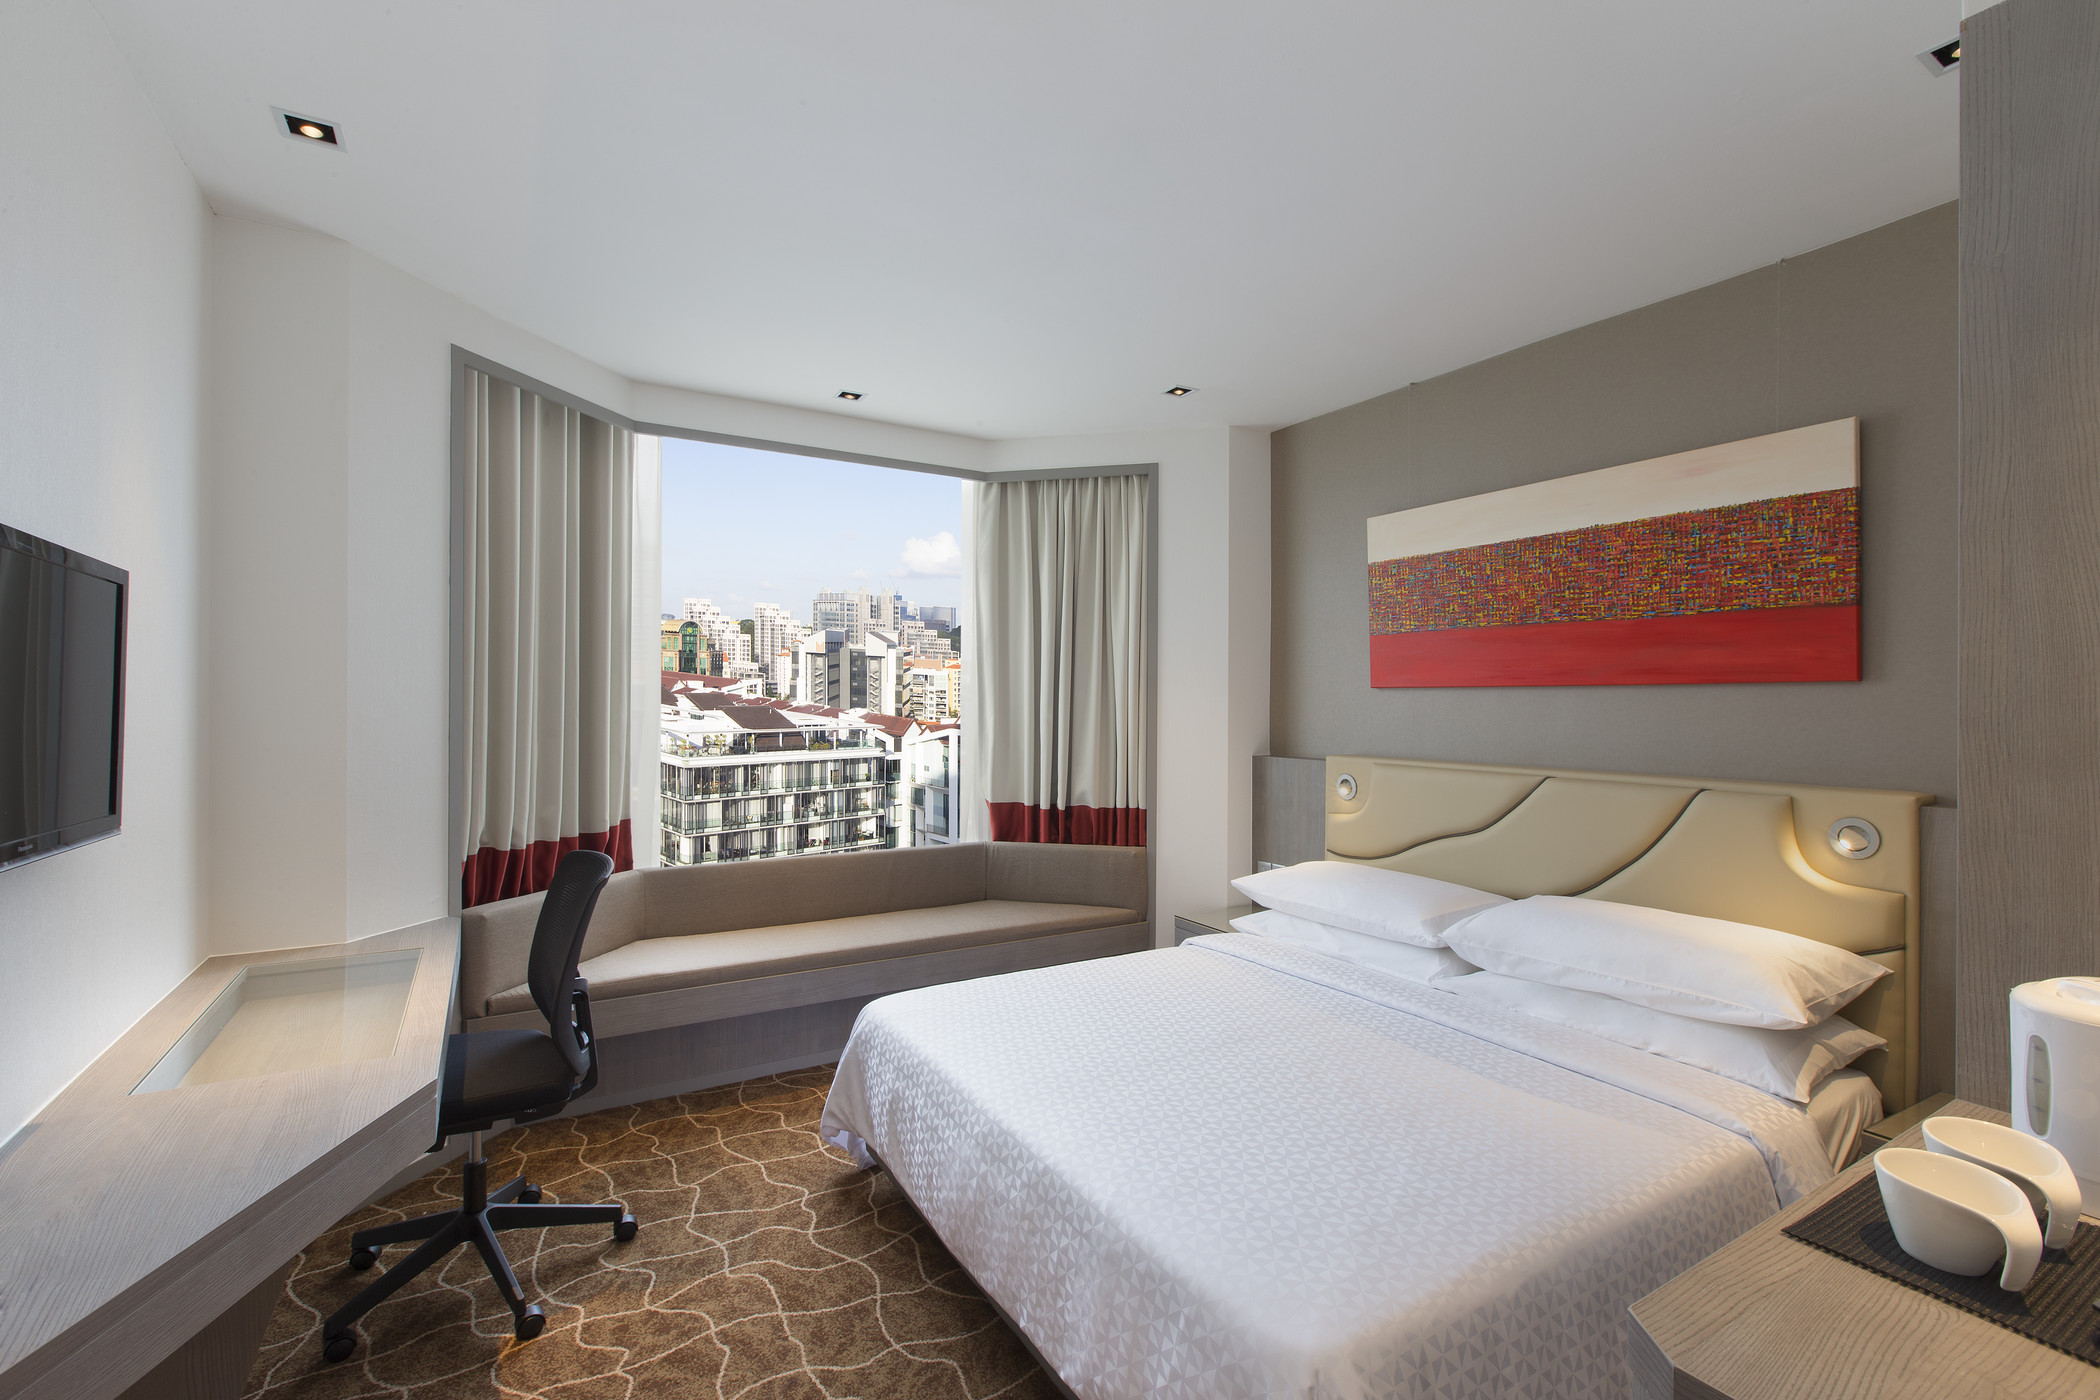 Bedroom | Photo Credit: Four Points by Sheraton Singapore, Riverview